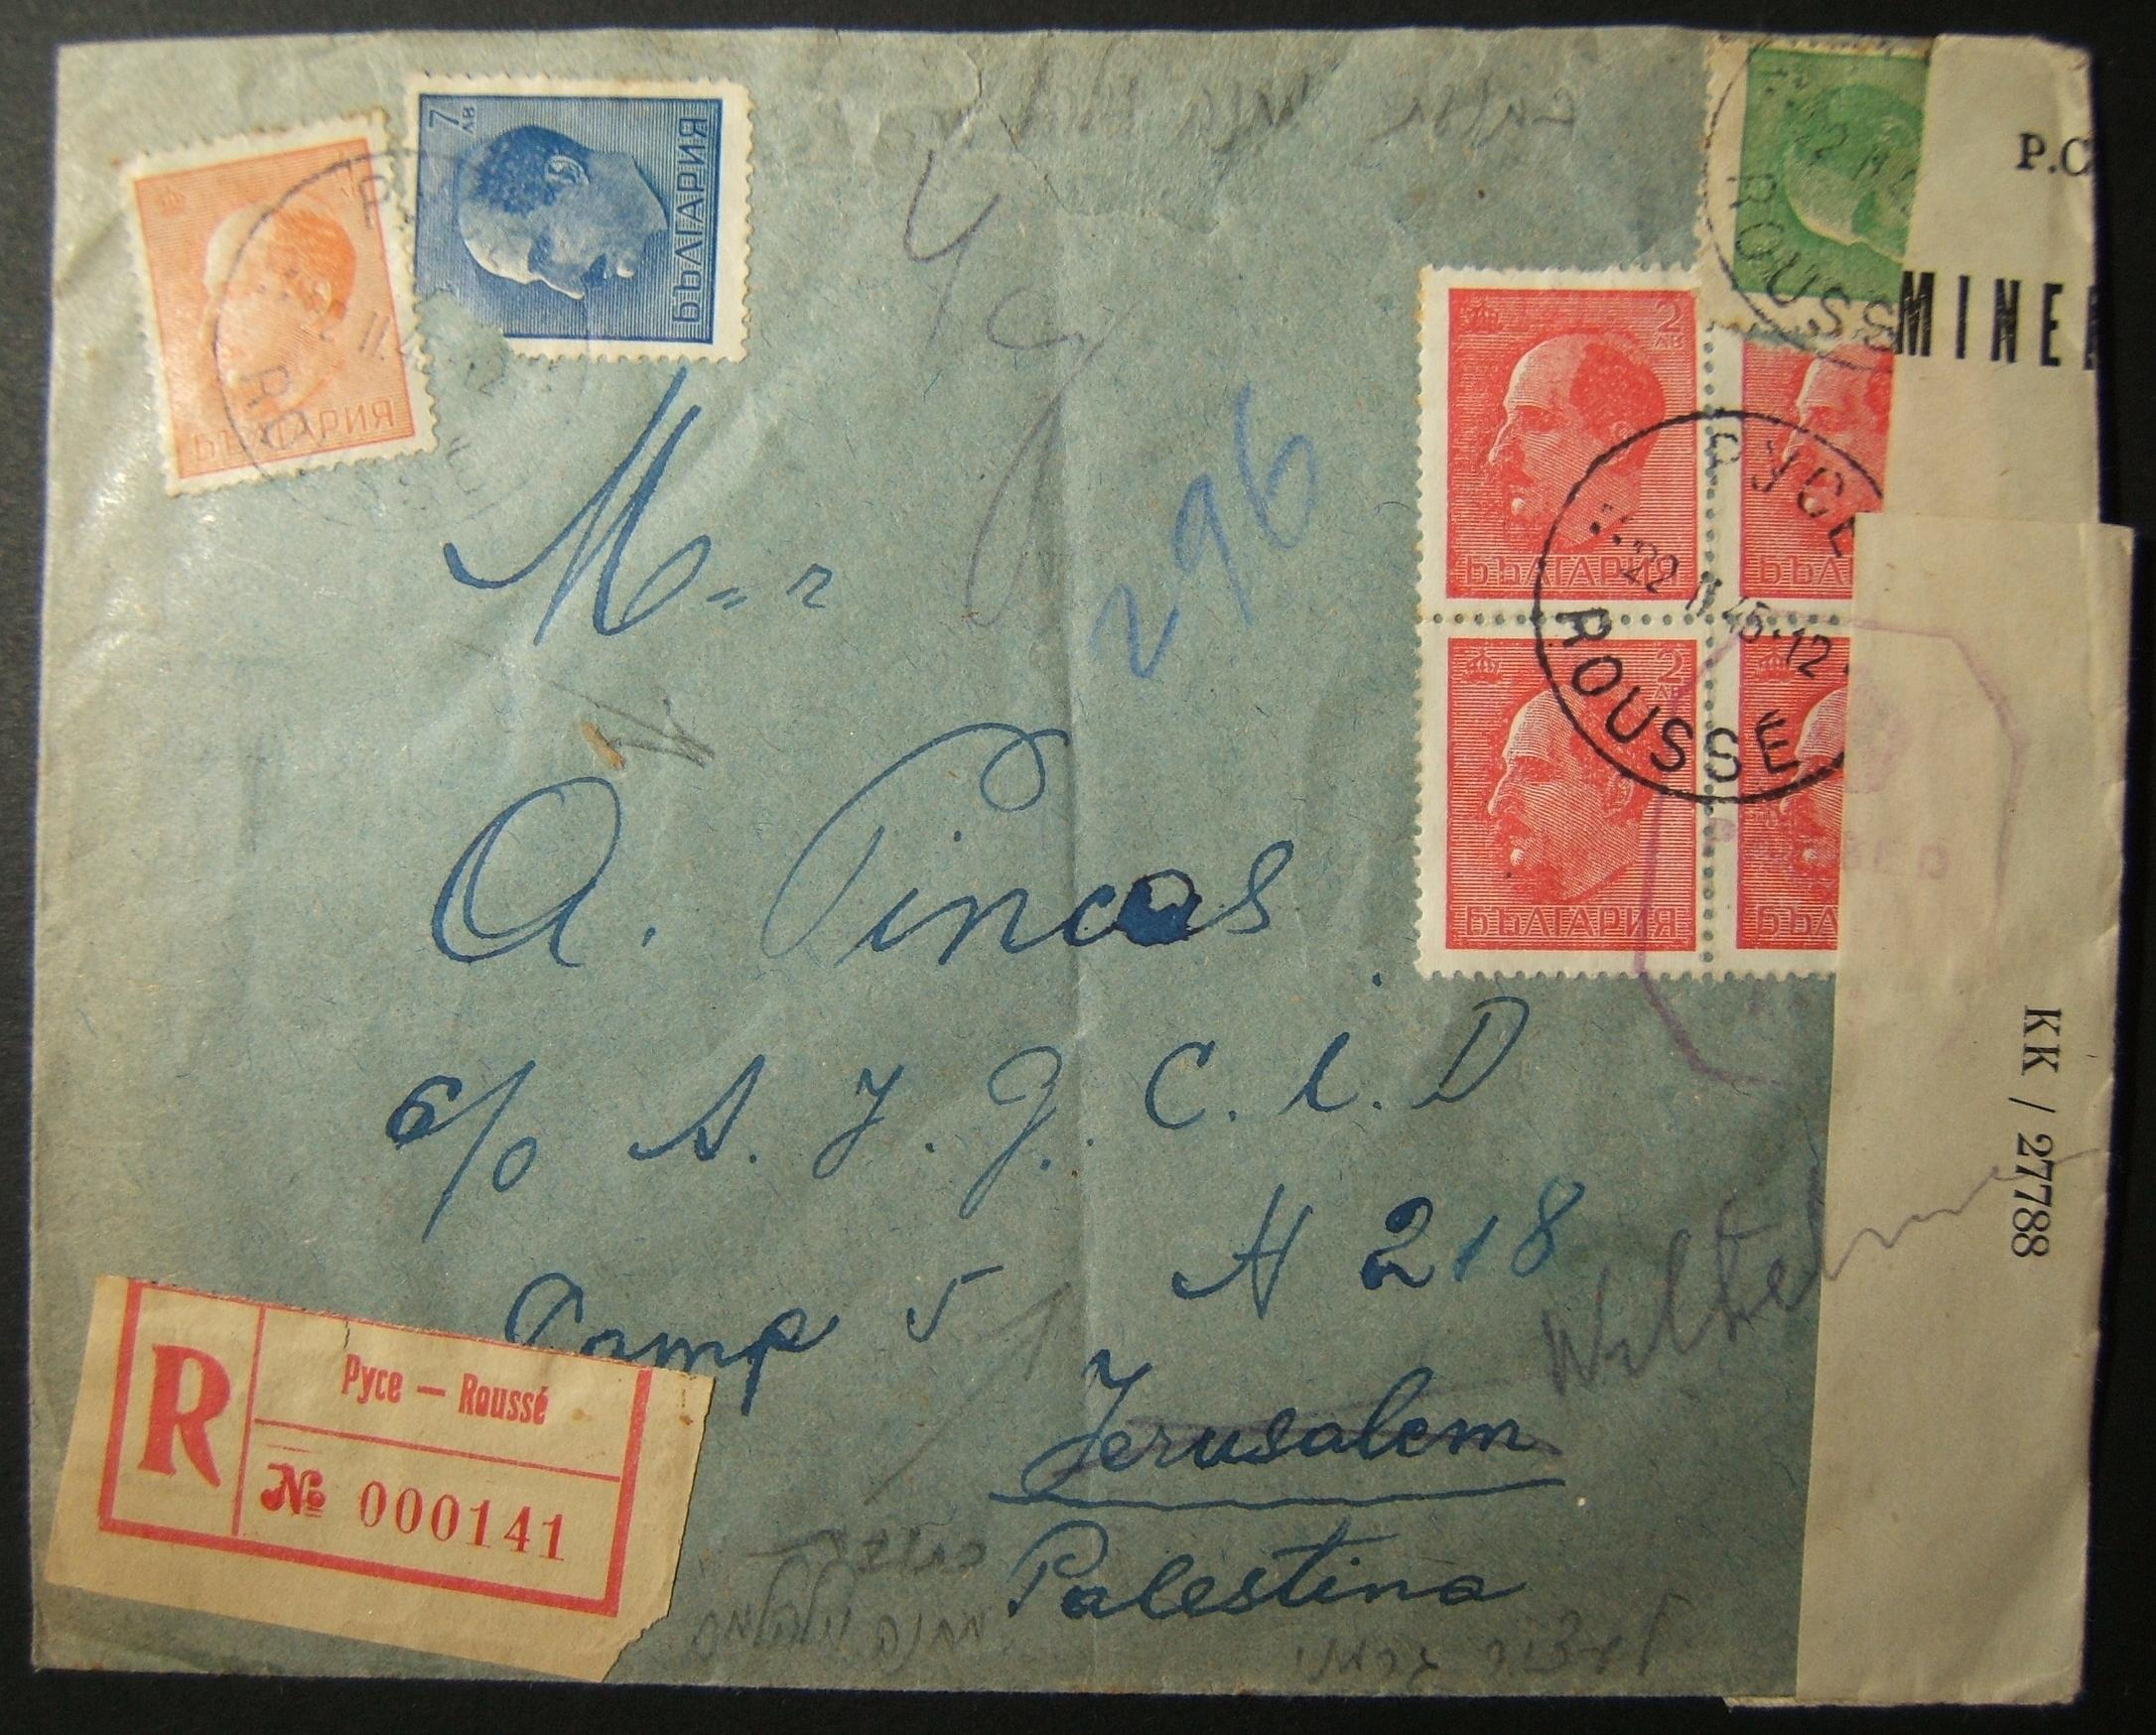 2/1945 WWII mail from Bulgaria to German civilian detention camp #5 in Palestine